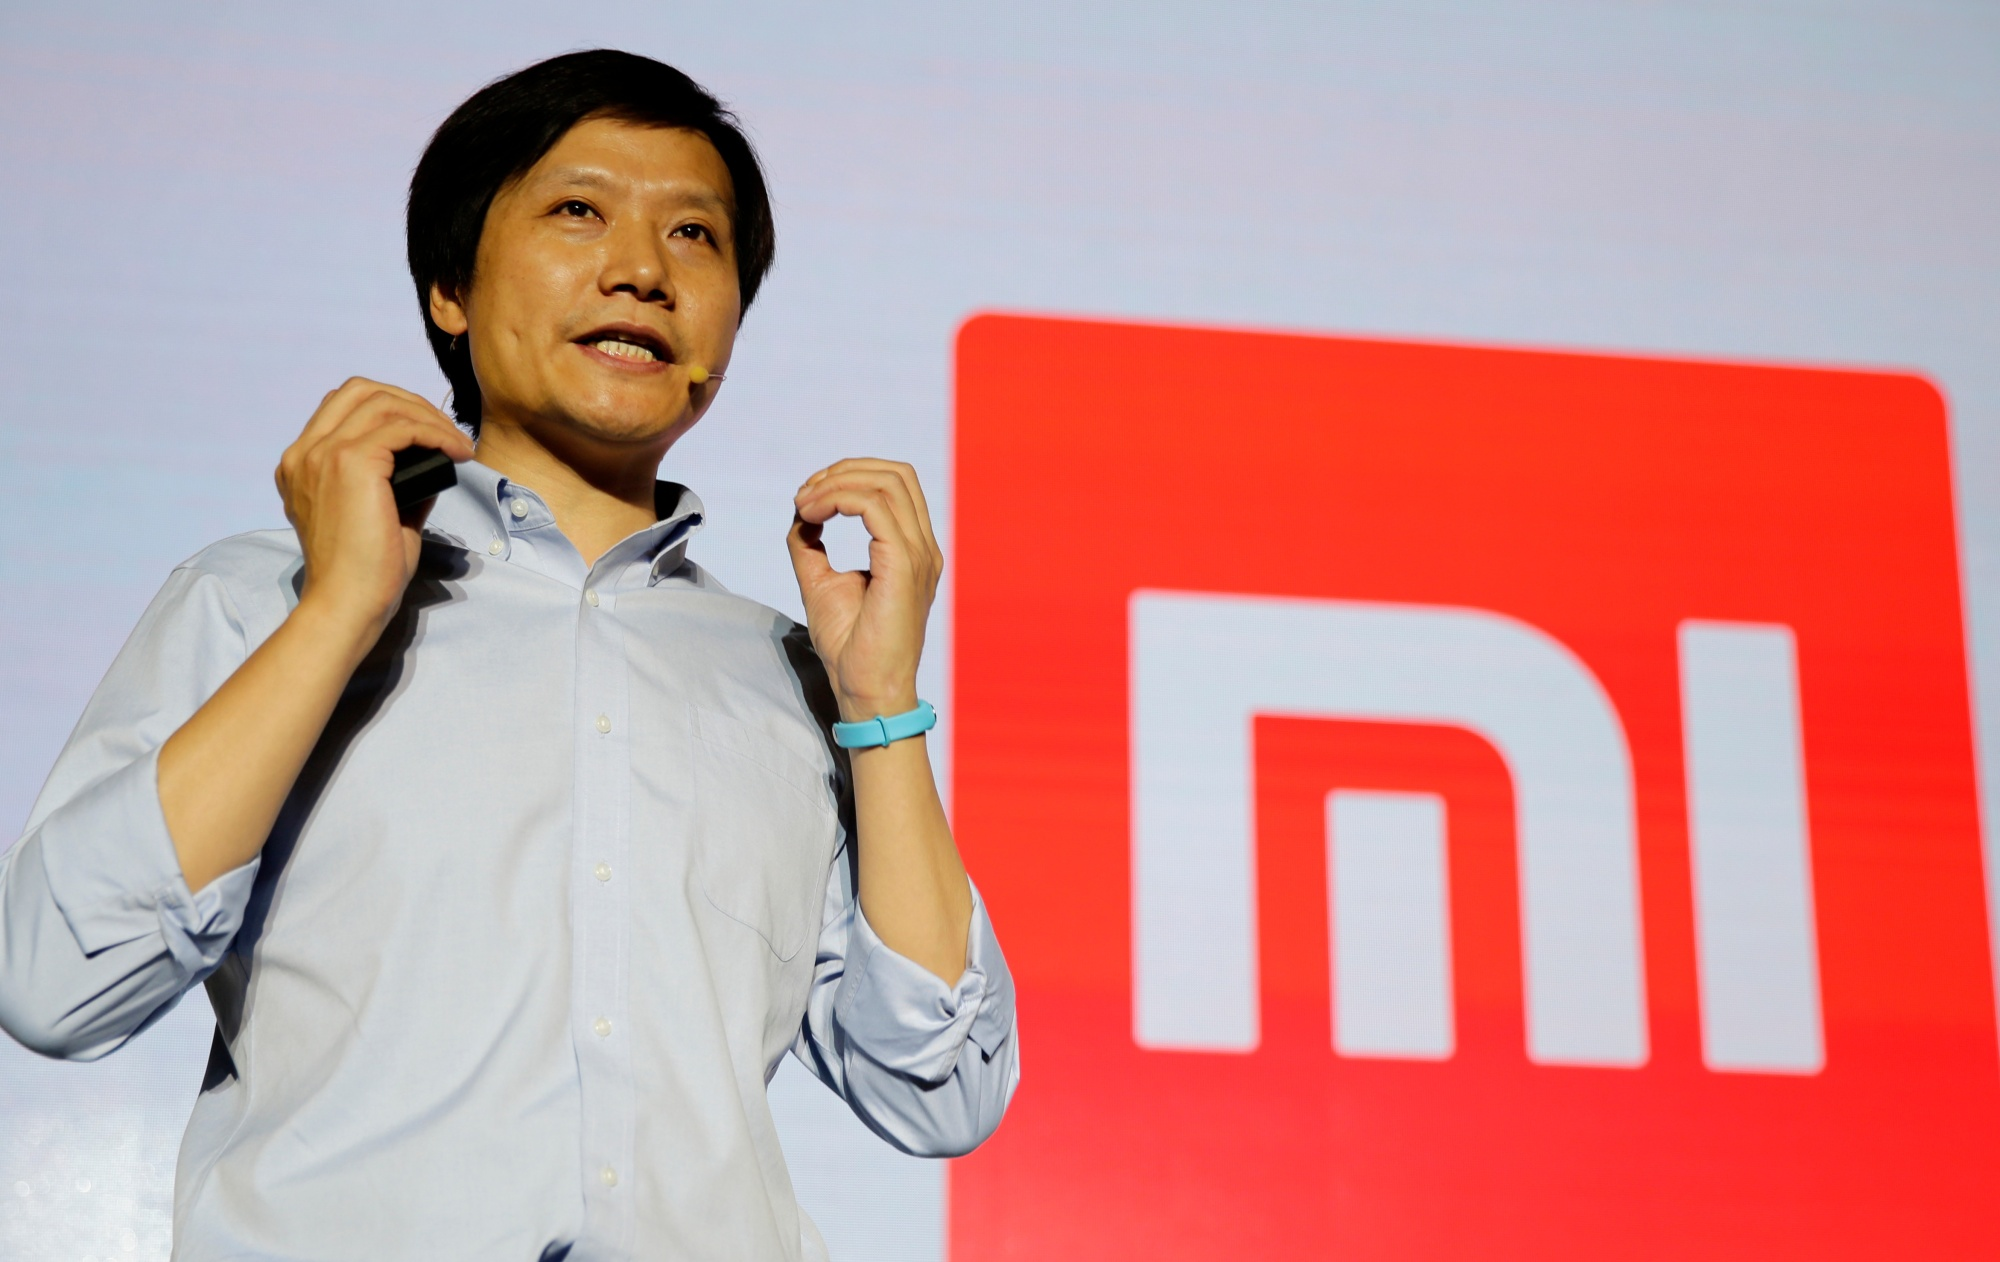 Lei Jun wants to take the Xiaomi brand on the road.